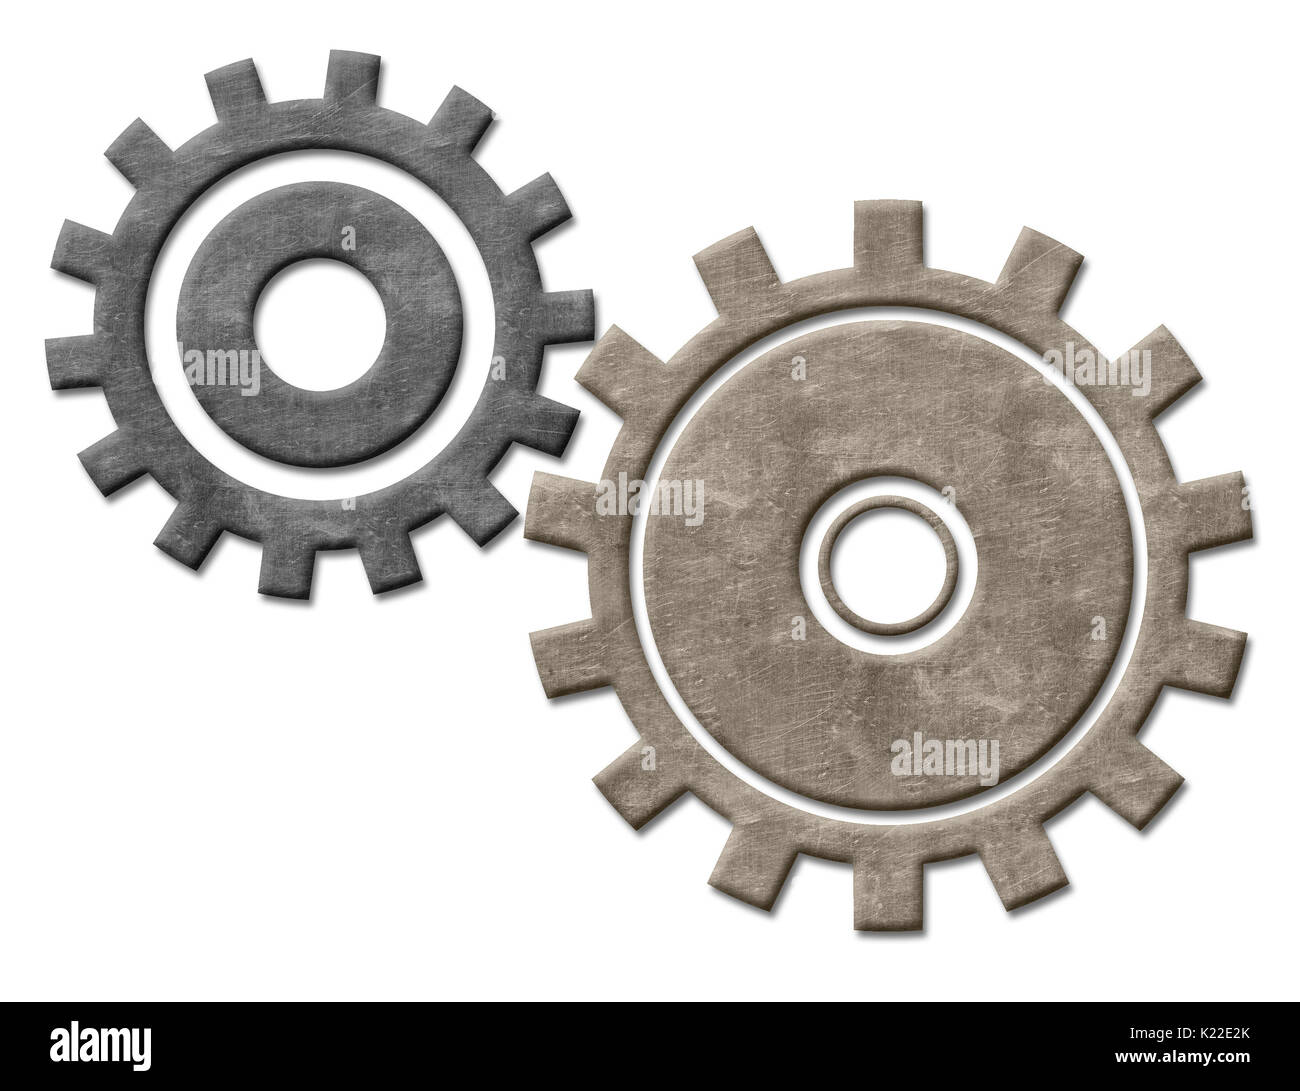 Invented more than 2,000 years ago, gears are combinations of several wheels with teeth.The teeth of one wheel fit into the teeth of another wheel. As the first wheel turns, it transfers its motion or power to the next wheel, and so on. Gears today are used in many different devices, including door handles, locks, bicycles, clocks, and watches. - Stock Image